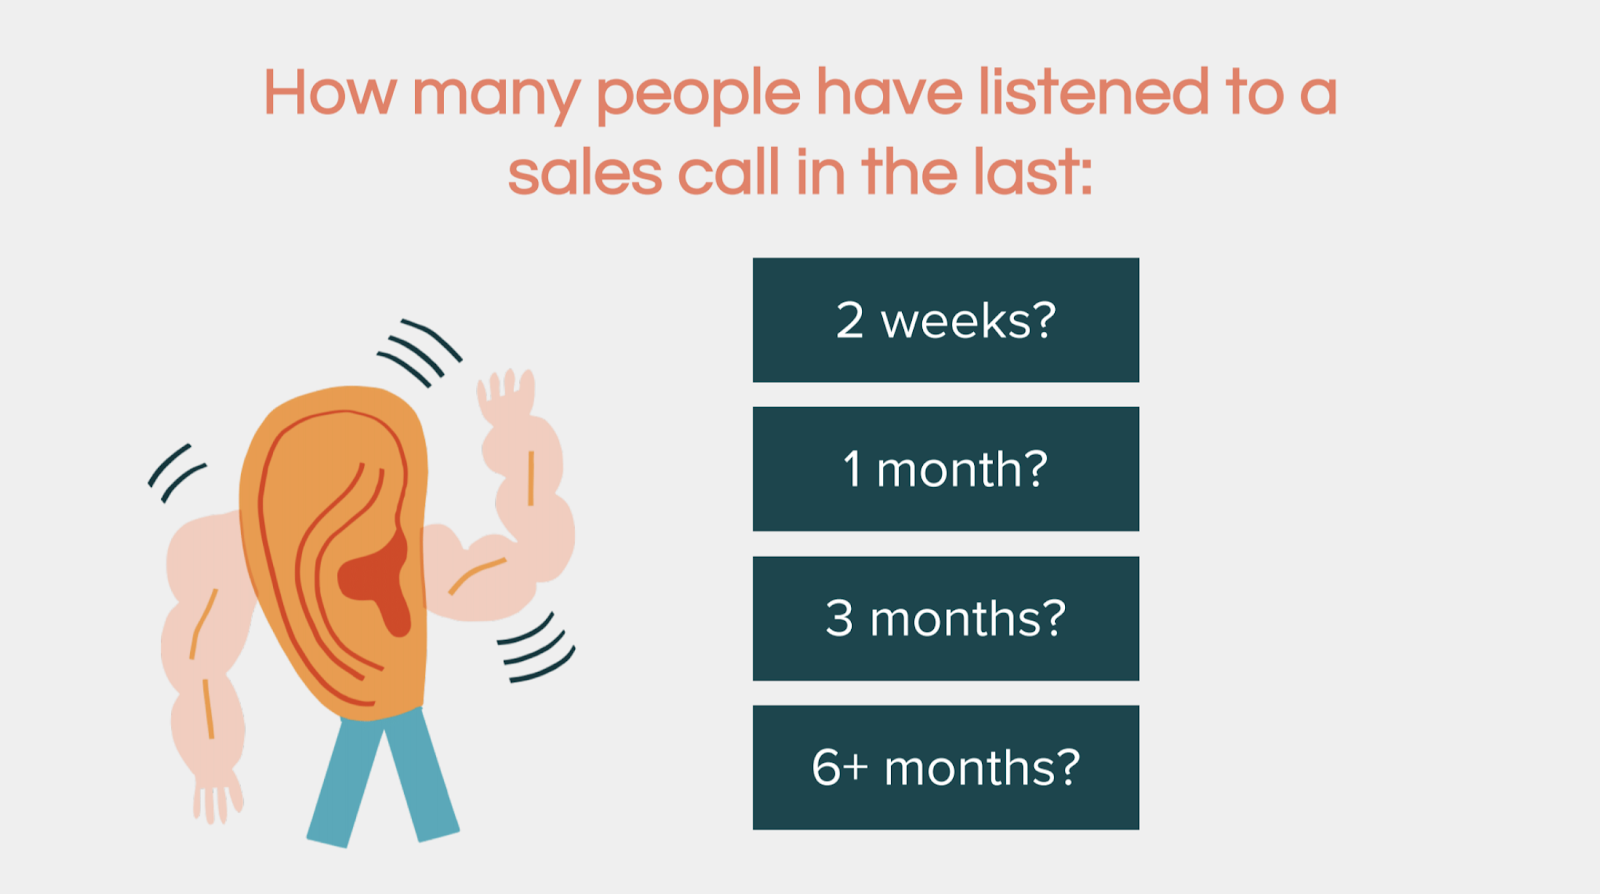 How many people have listened to a sales call in the last two weeks?